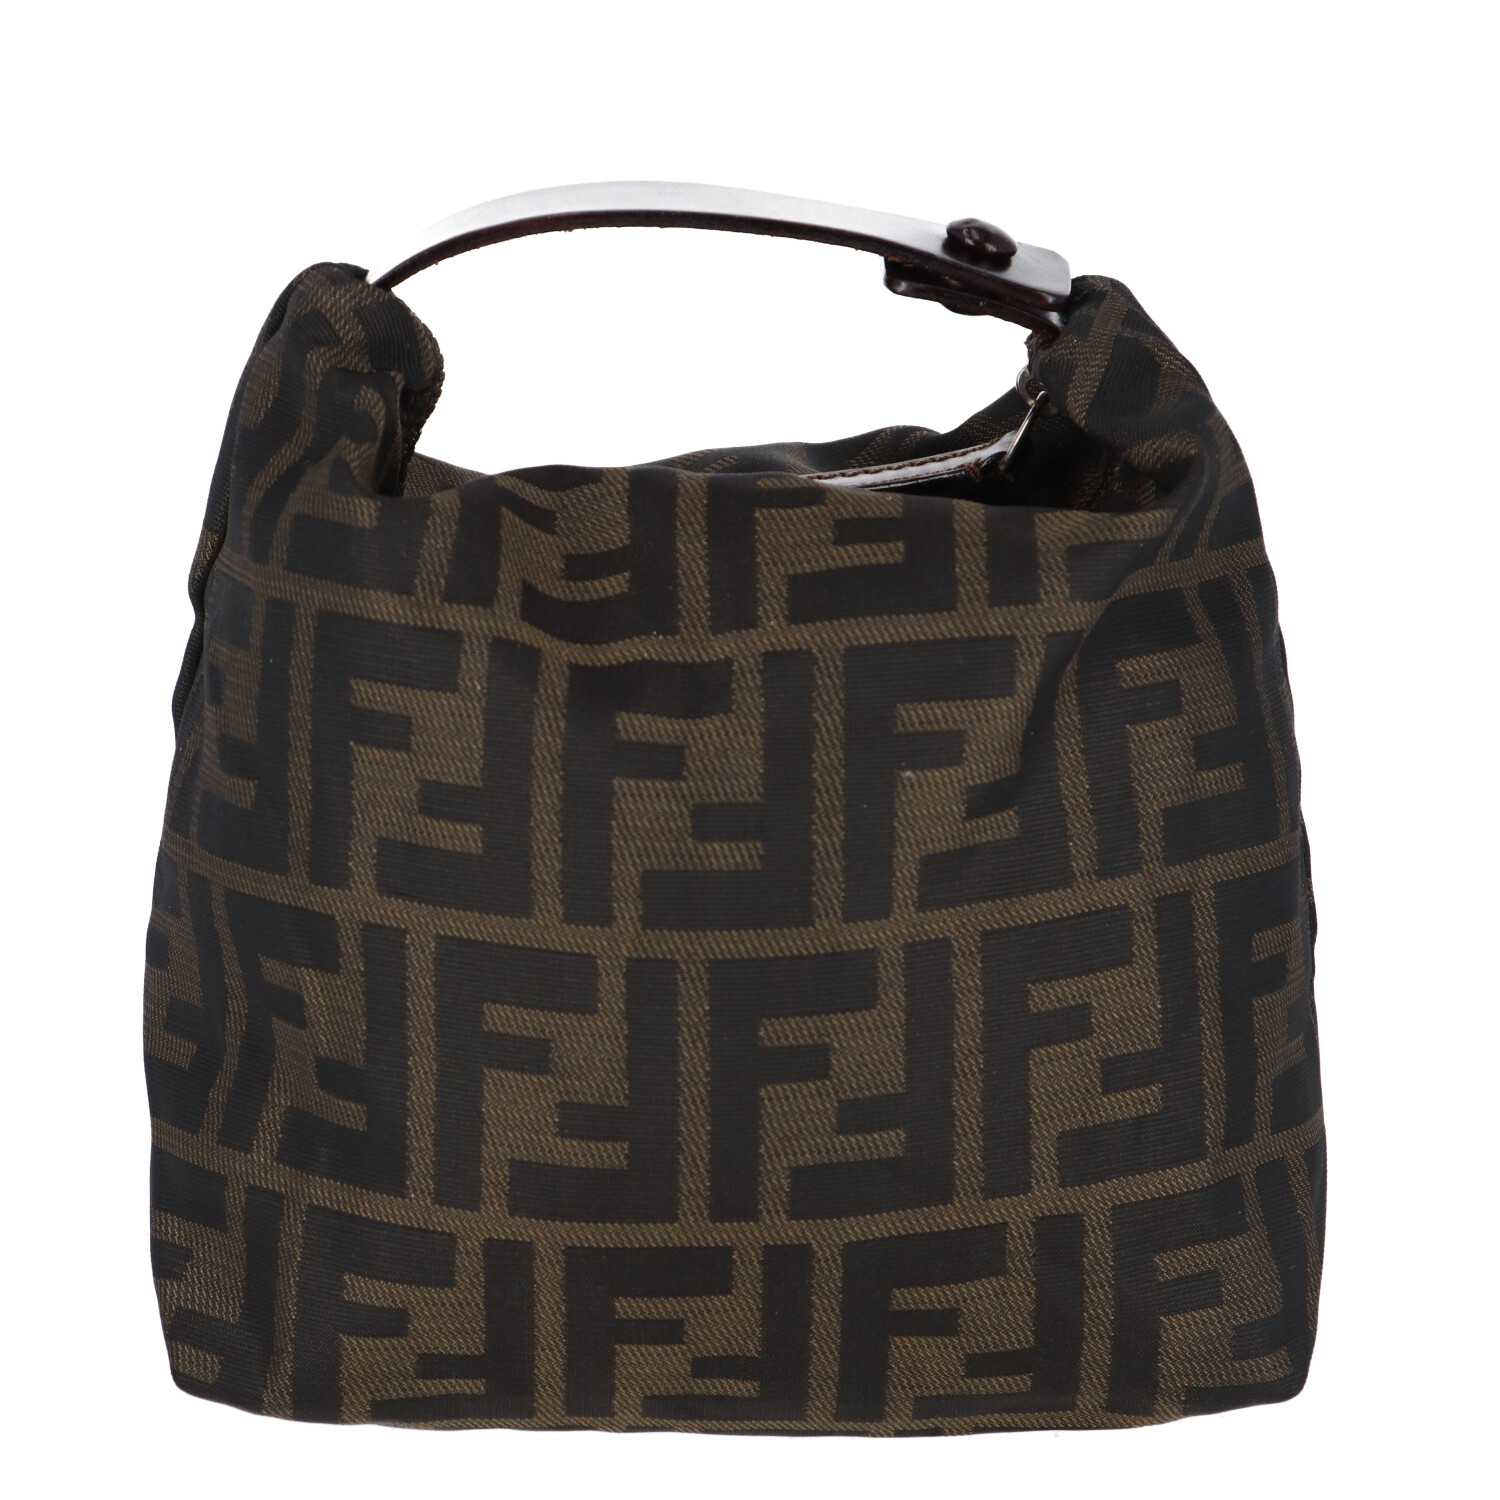 Brown Zucca Nylon Handbag Mini